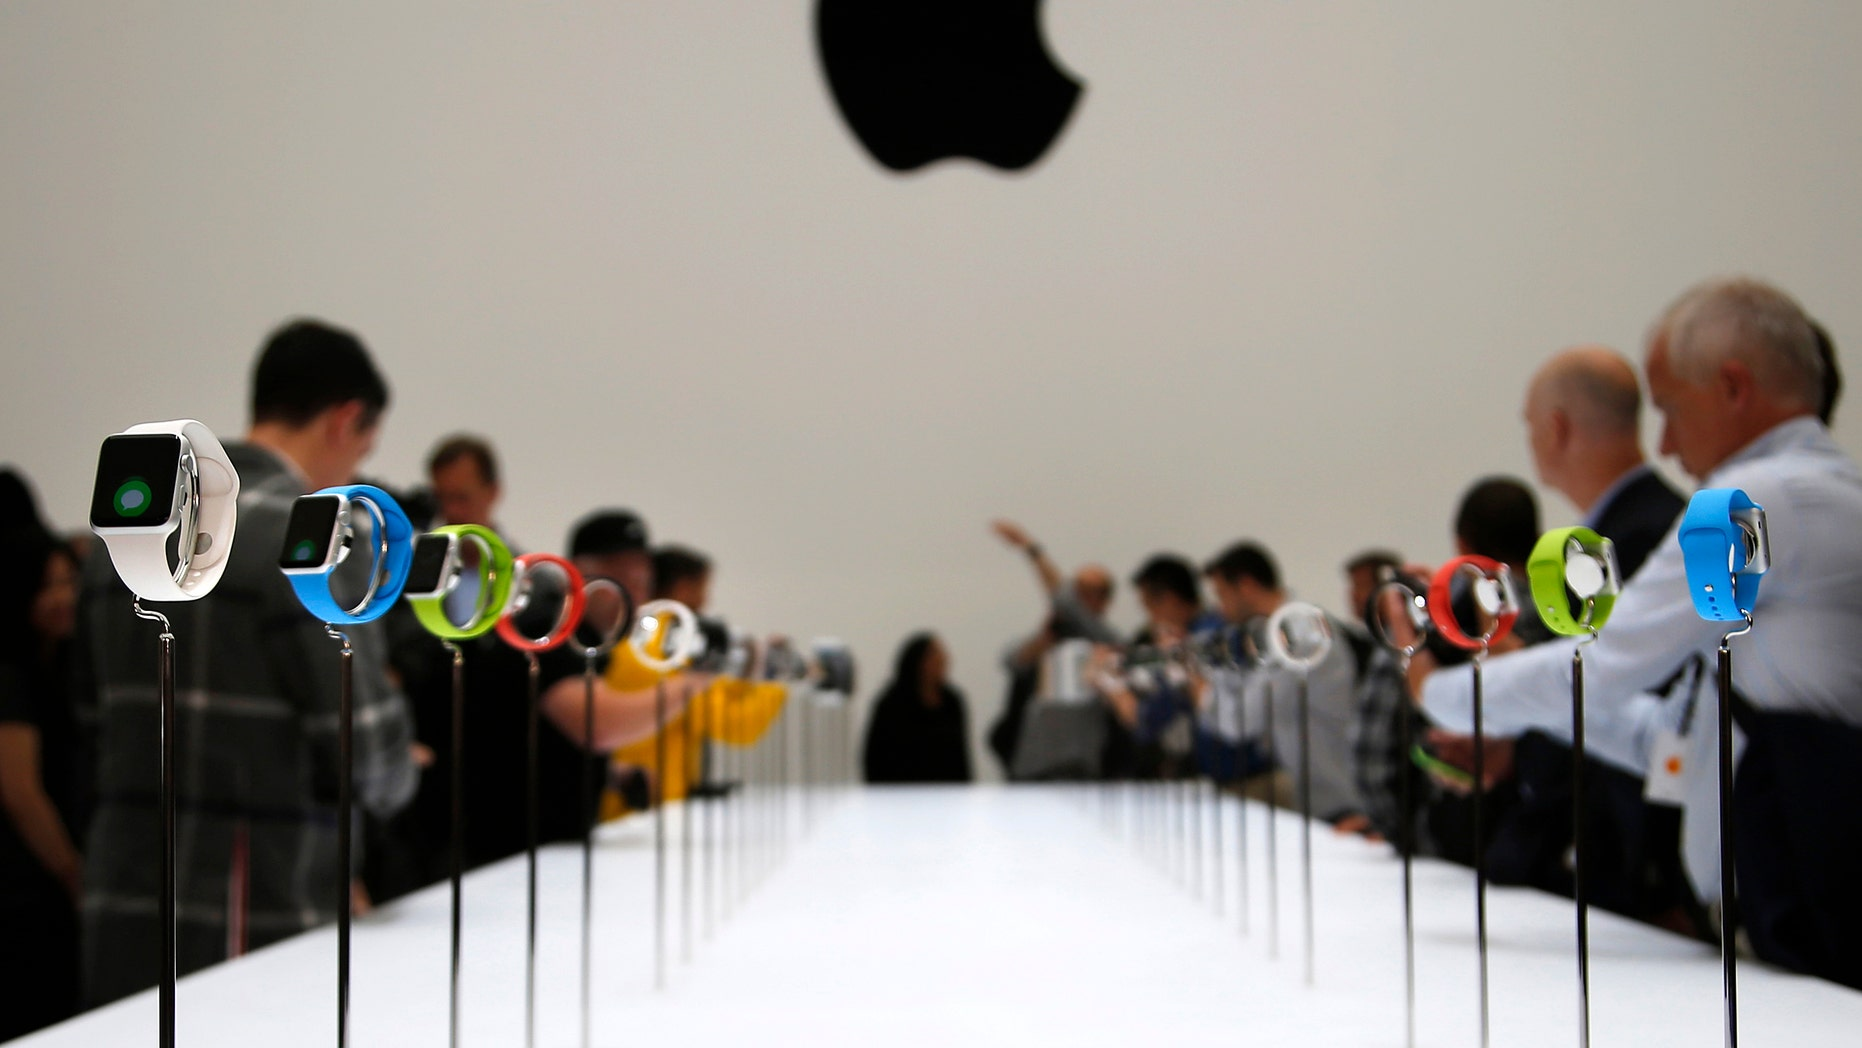 Members of the media look at the Apple Watch during an Apple event at the Flint Center in Cupertino, California, September 9, 2014. REUTERS/Stephen Lam (United States - Tags: SCIENCE TECHNOLOGY BUSINESS TPX IMAGES OF THE DAY) - RTR45L64